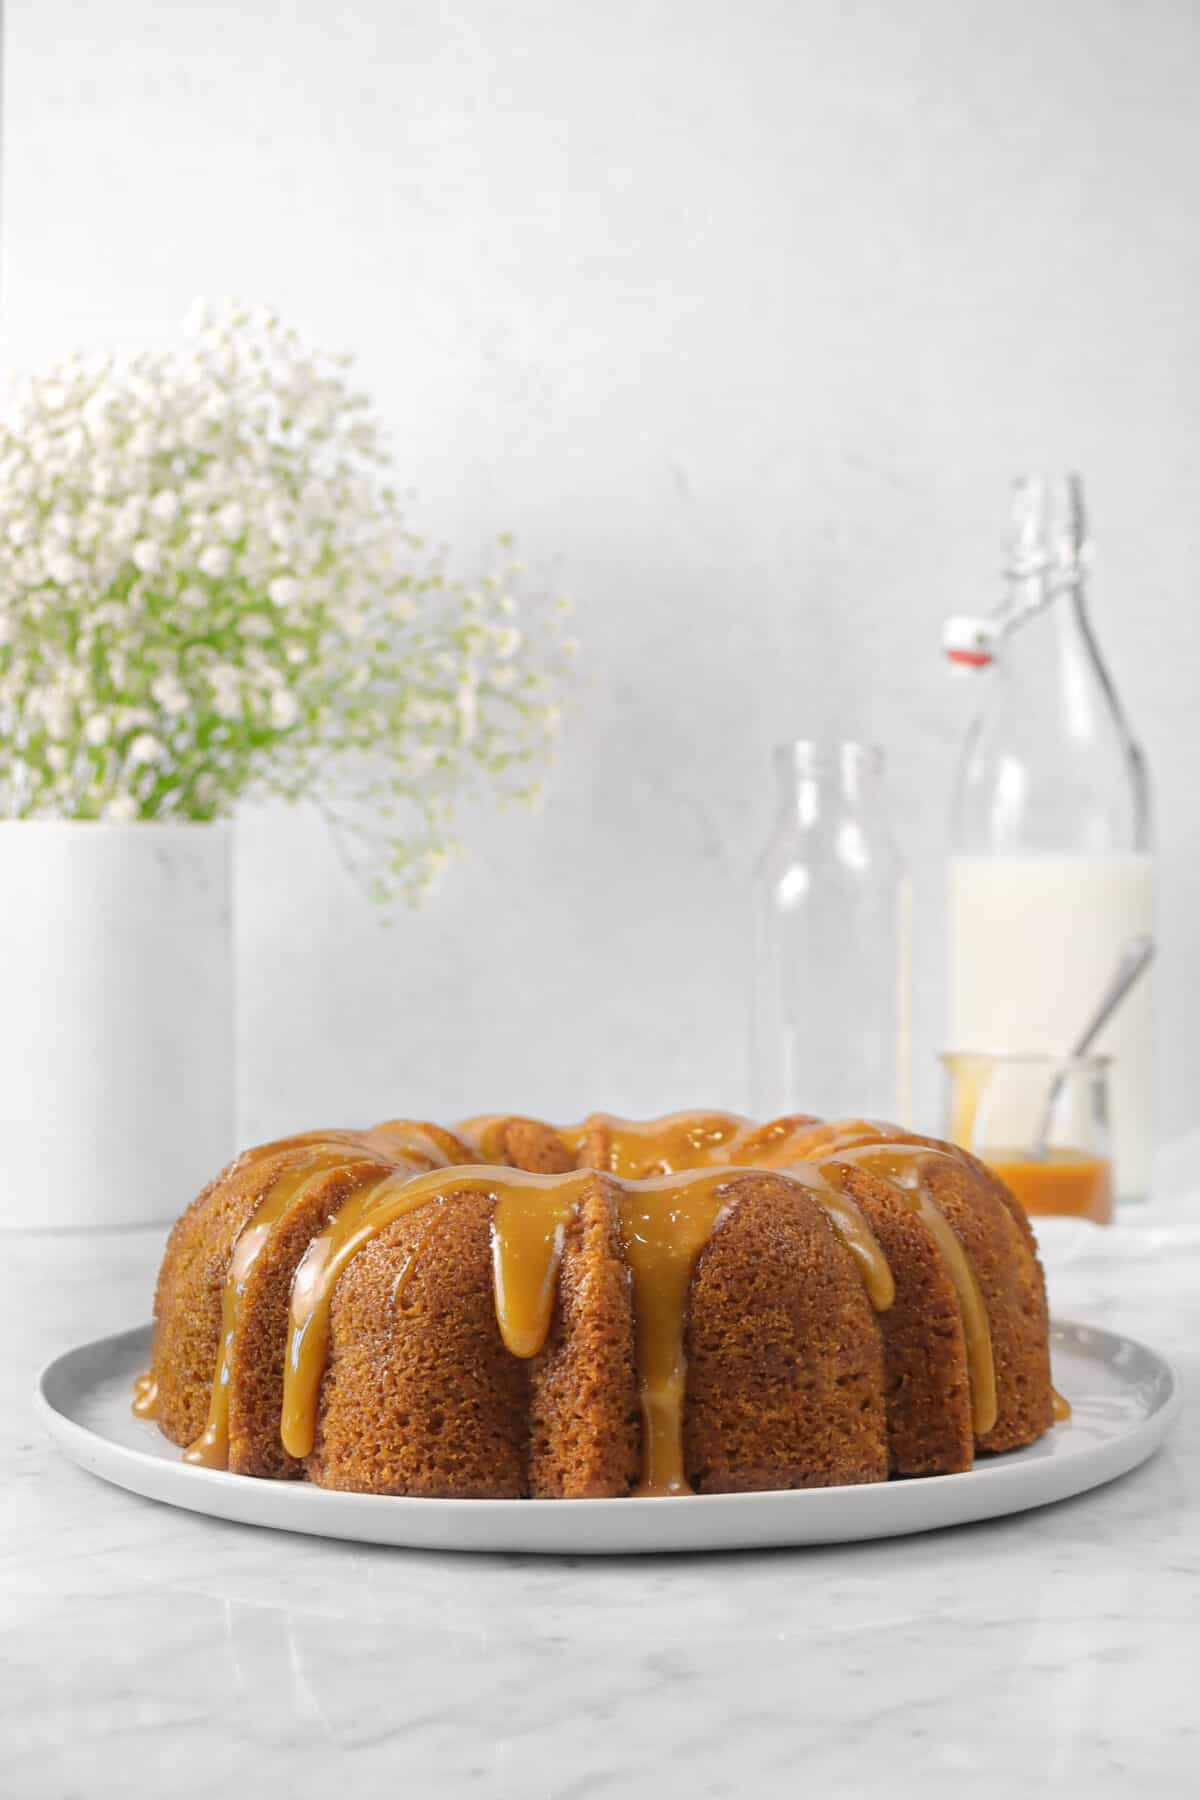 bundt cake on a white plate with caramel sauce, milk, and flowers